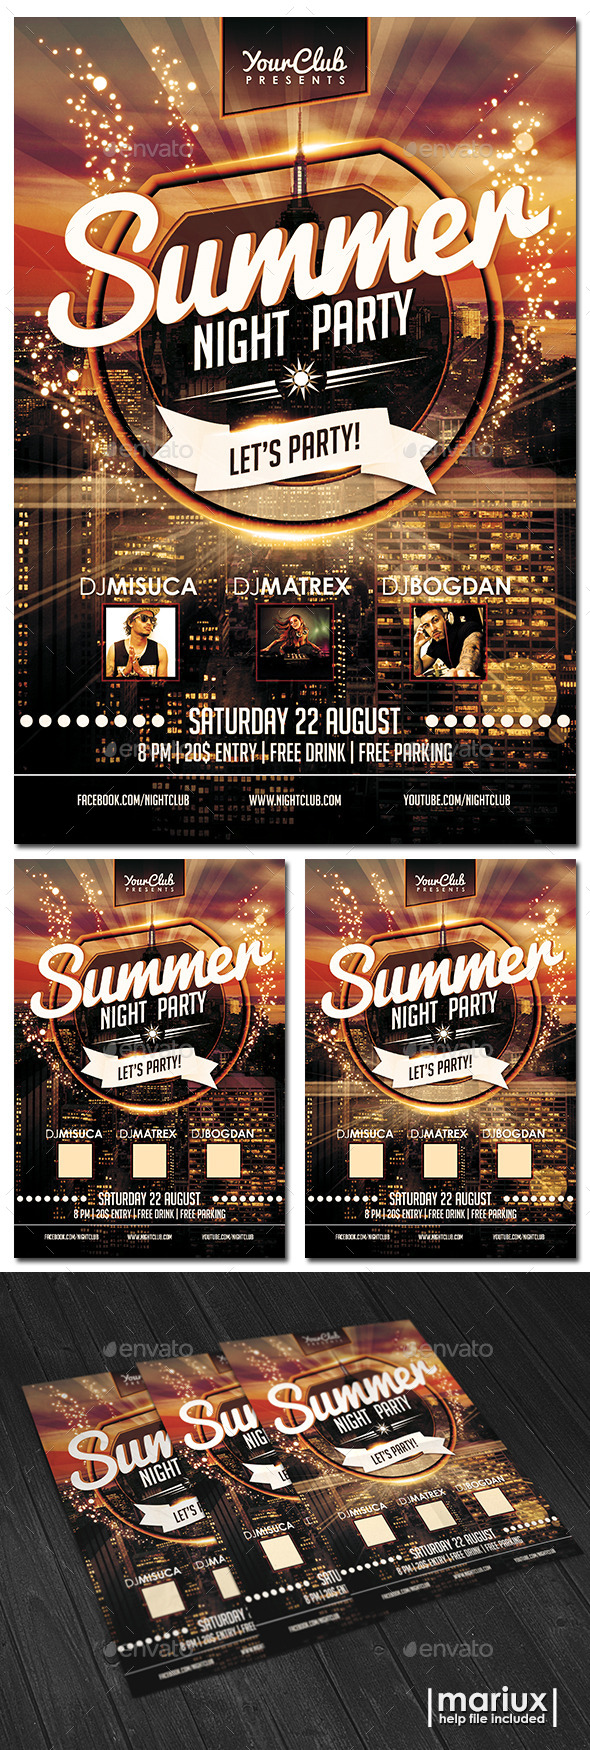 GraphicRiver Summer Night Party Flyer 11893802